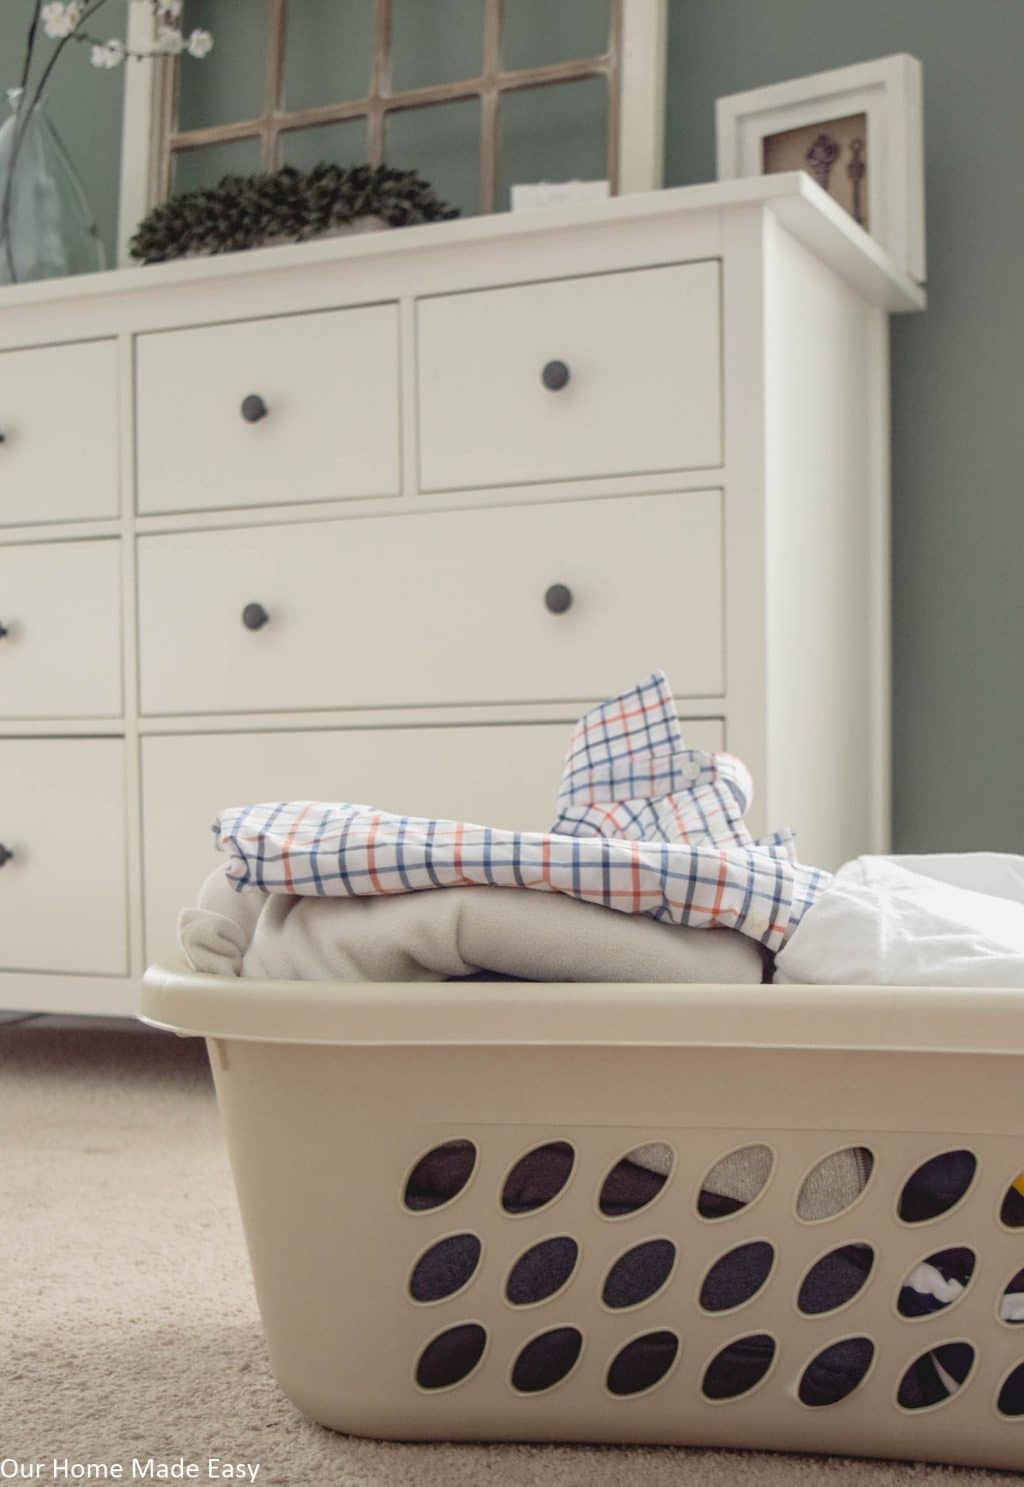 Doing laundry in a house instantly makes your dwelling feel more like home